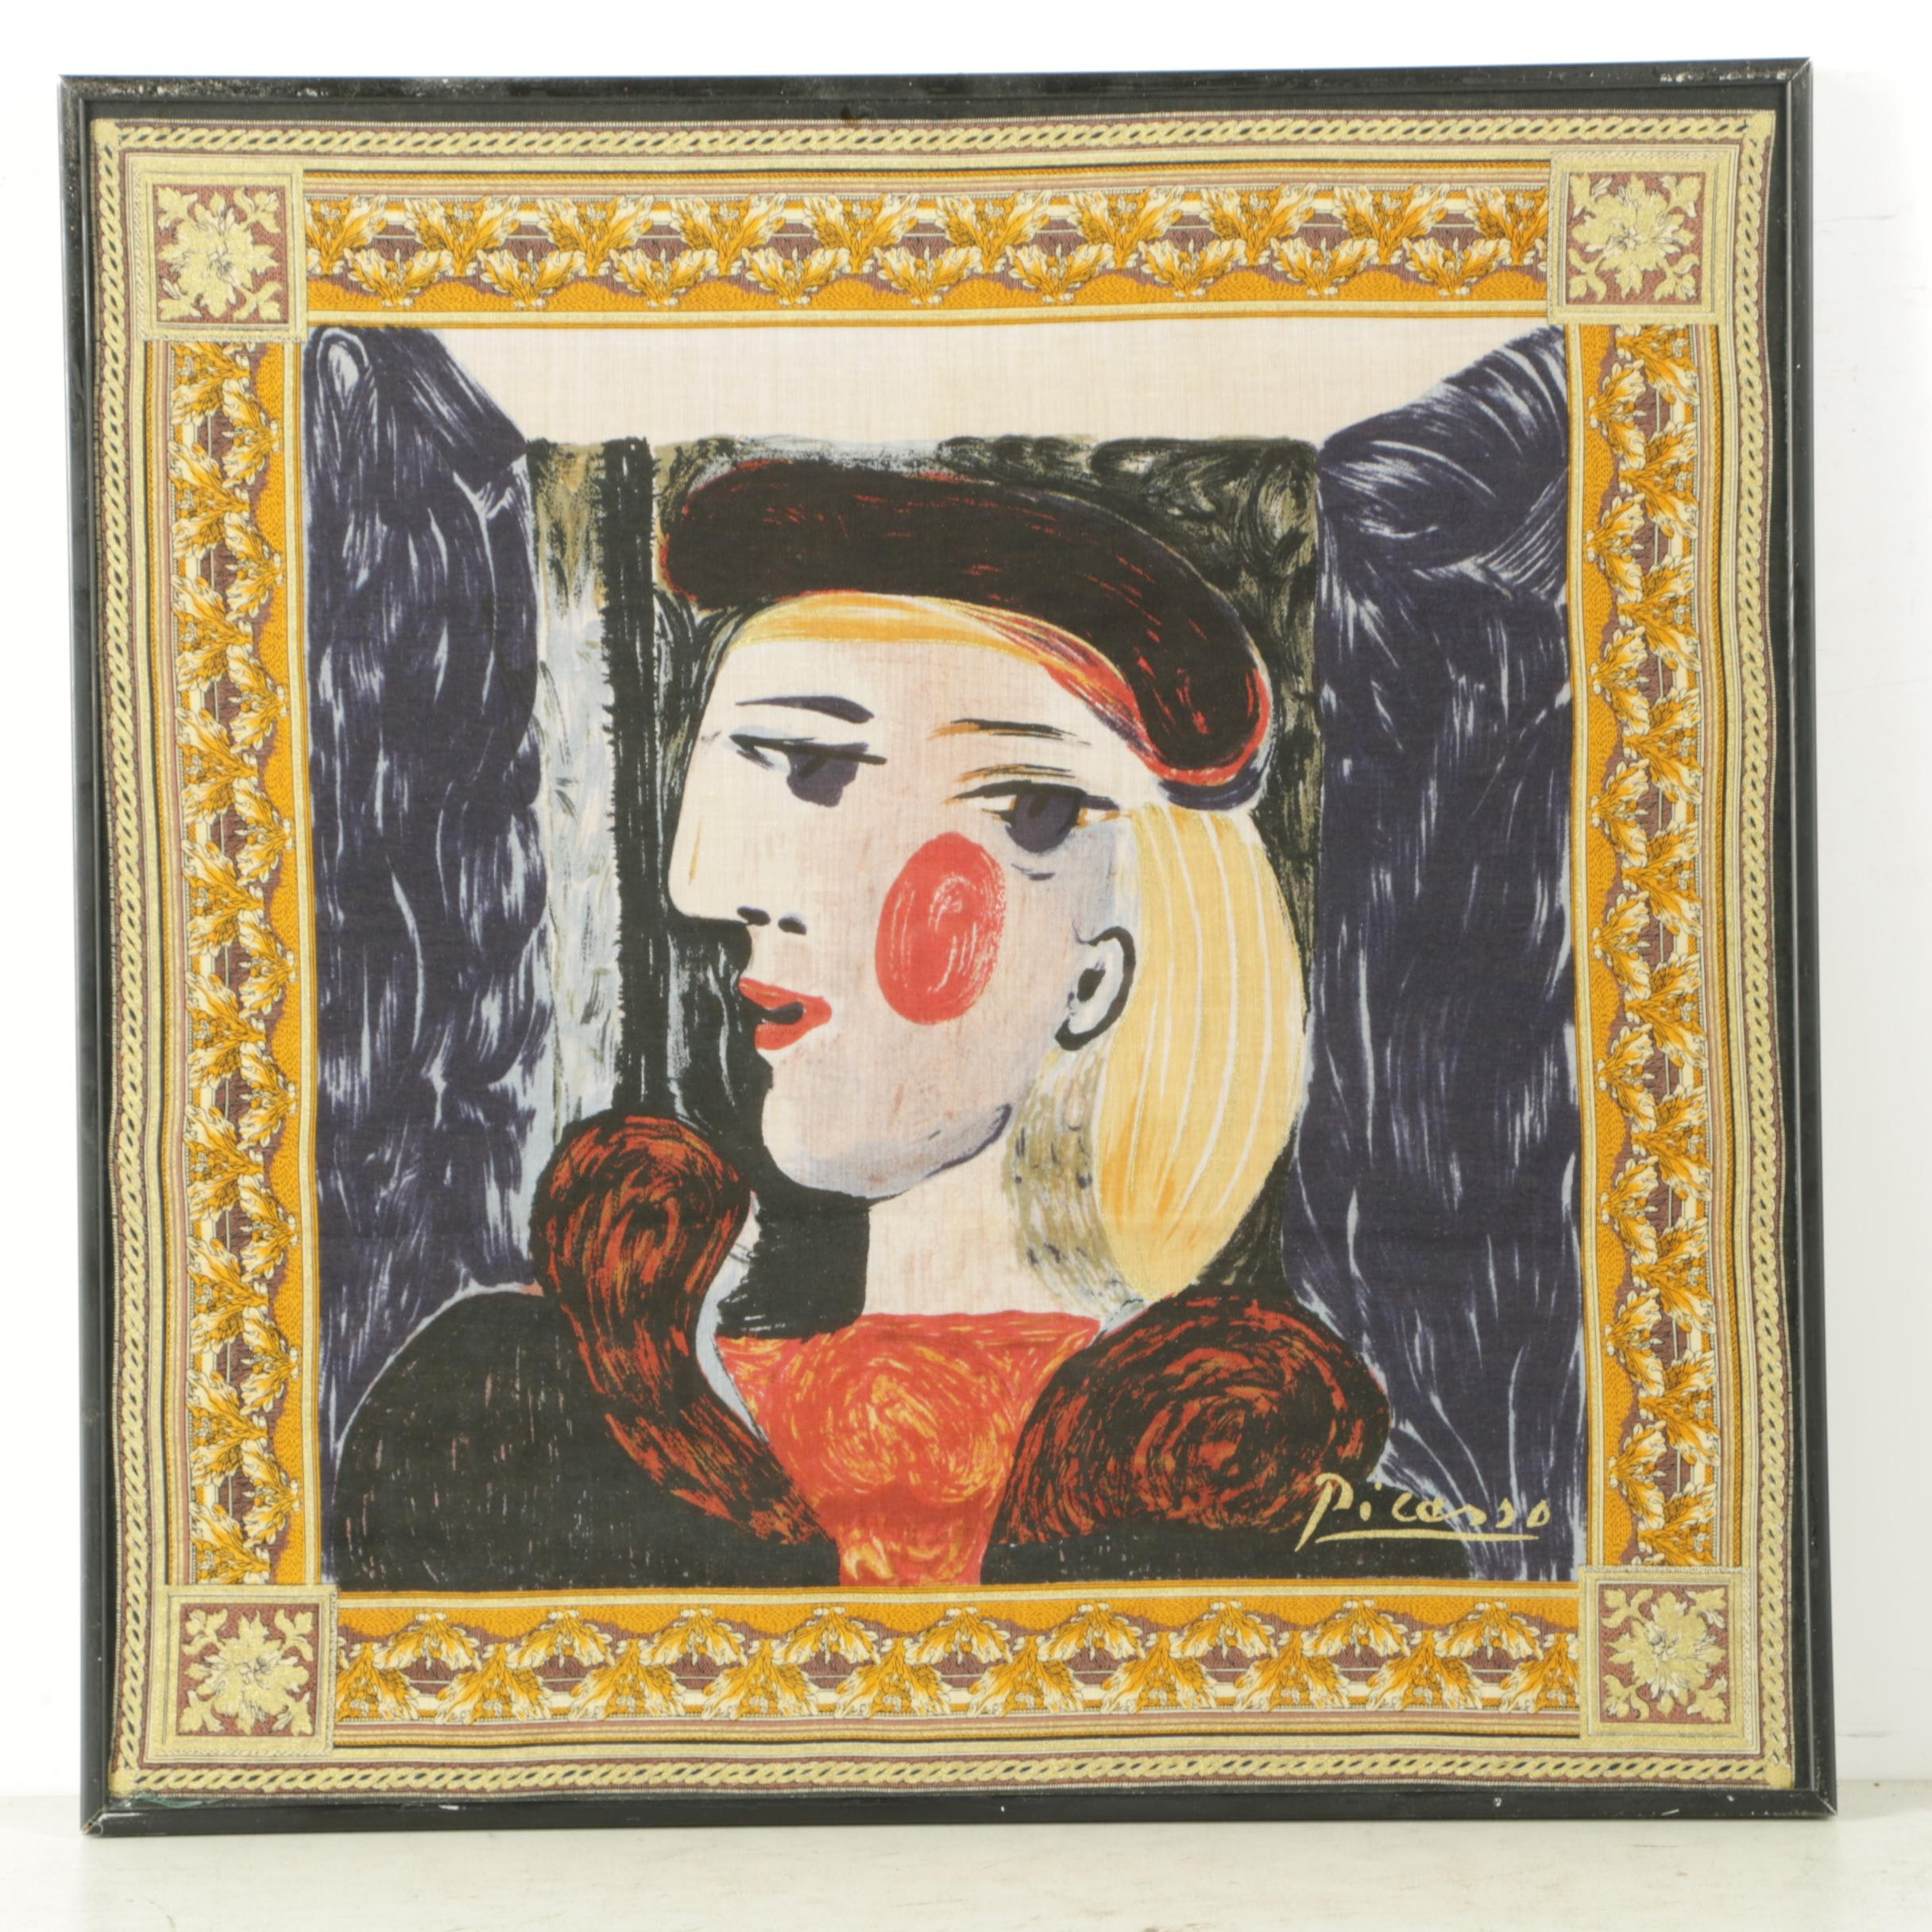 Silk Scarf Featuring Picasso's Work